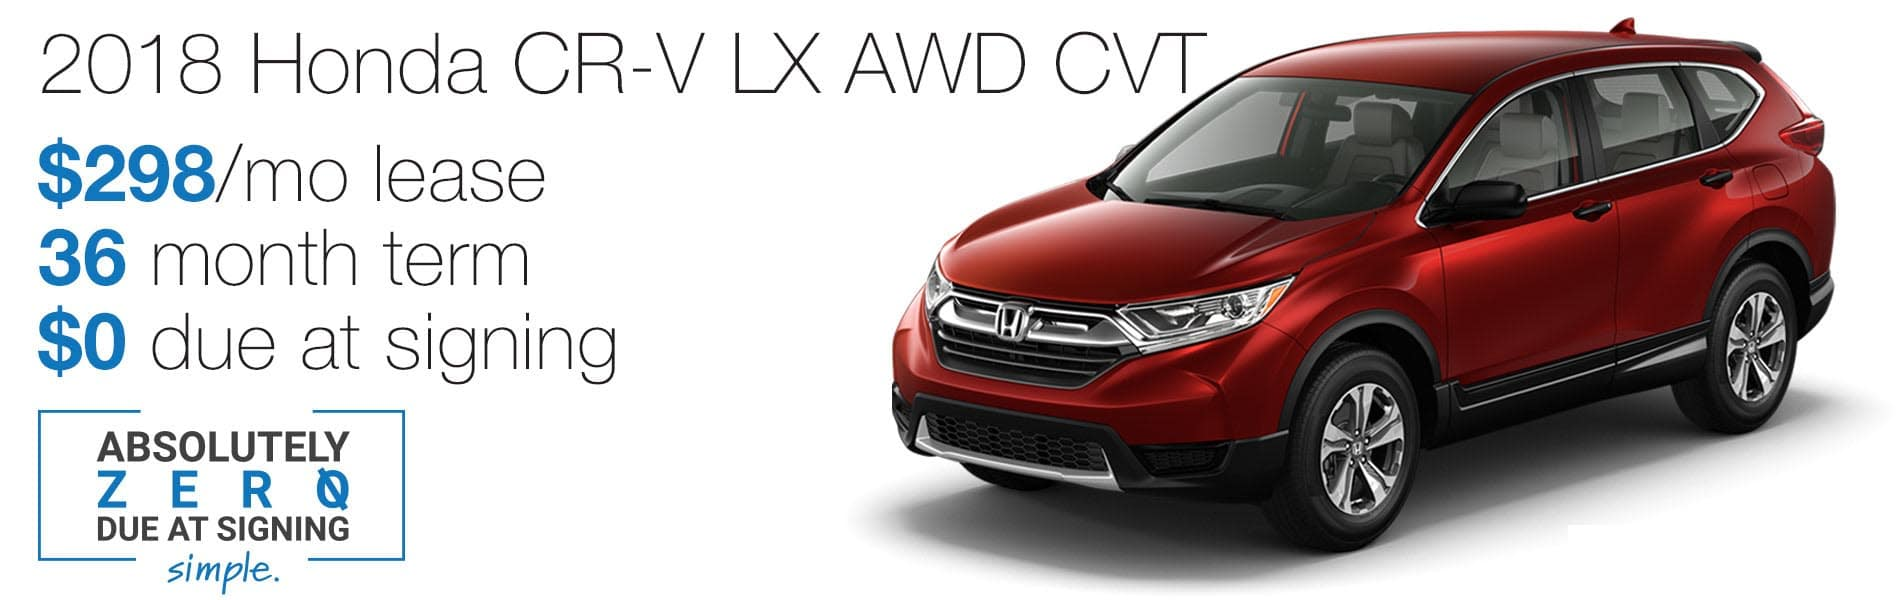 Lease A 2018 Honda CR V LX AWD For $298 Per Month With Absolutely $0